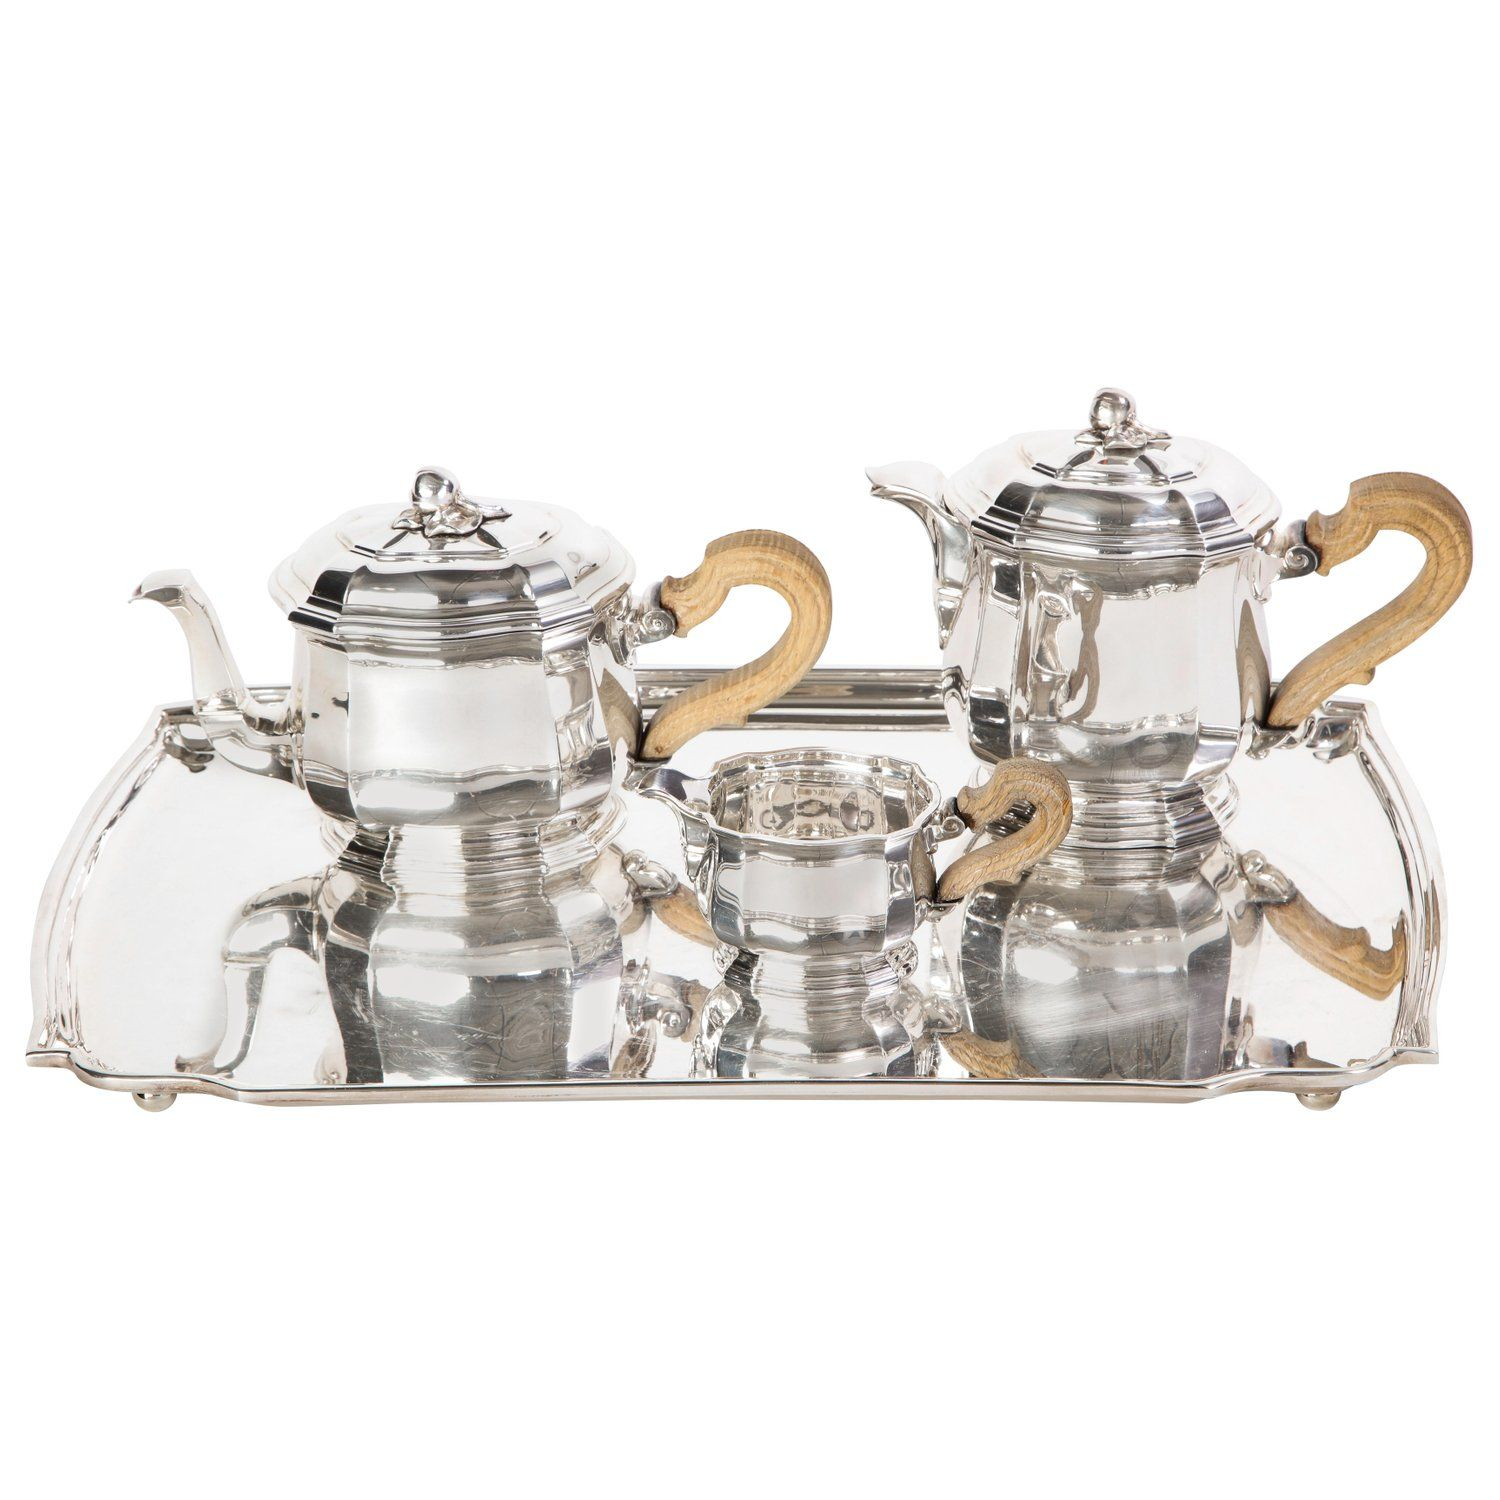 French ThreePiece Tea and Coffee Set in Silver, Mark of